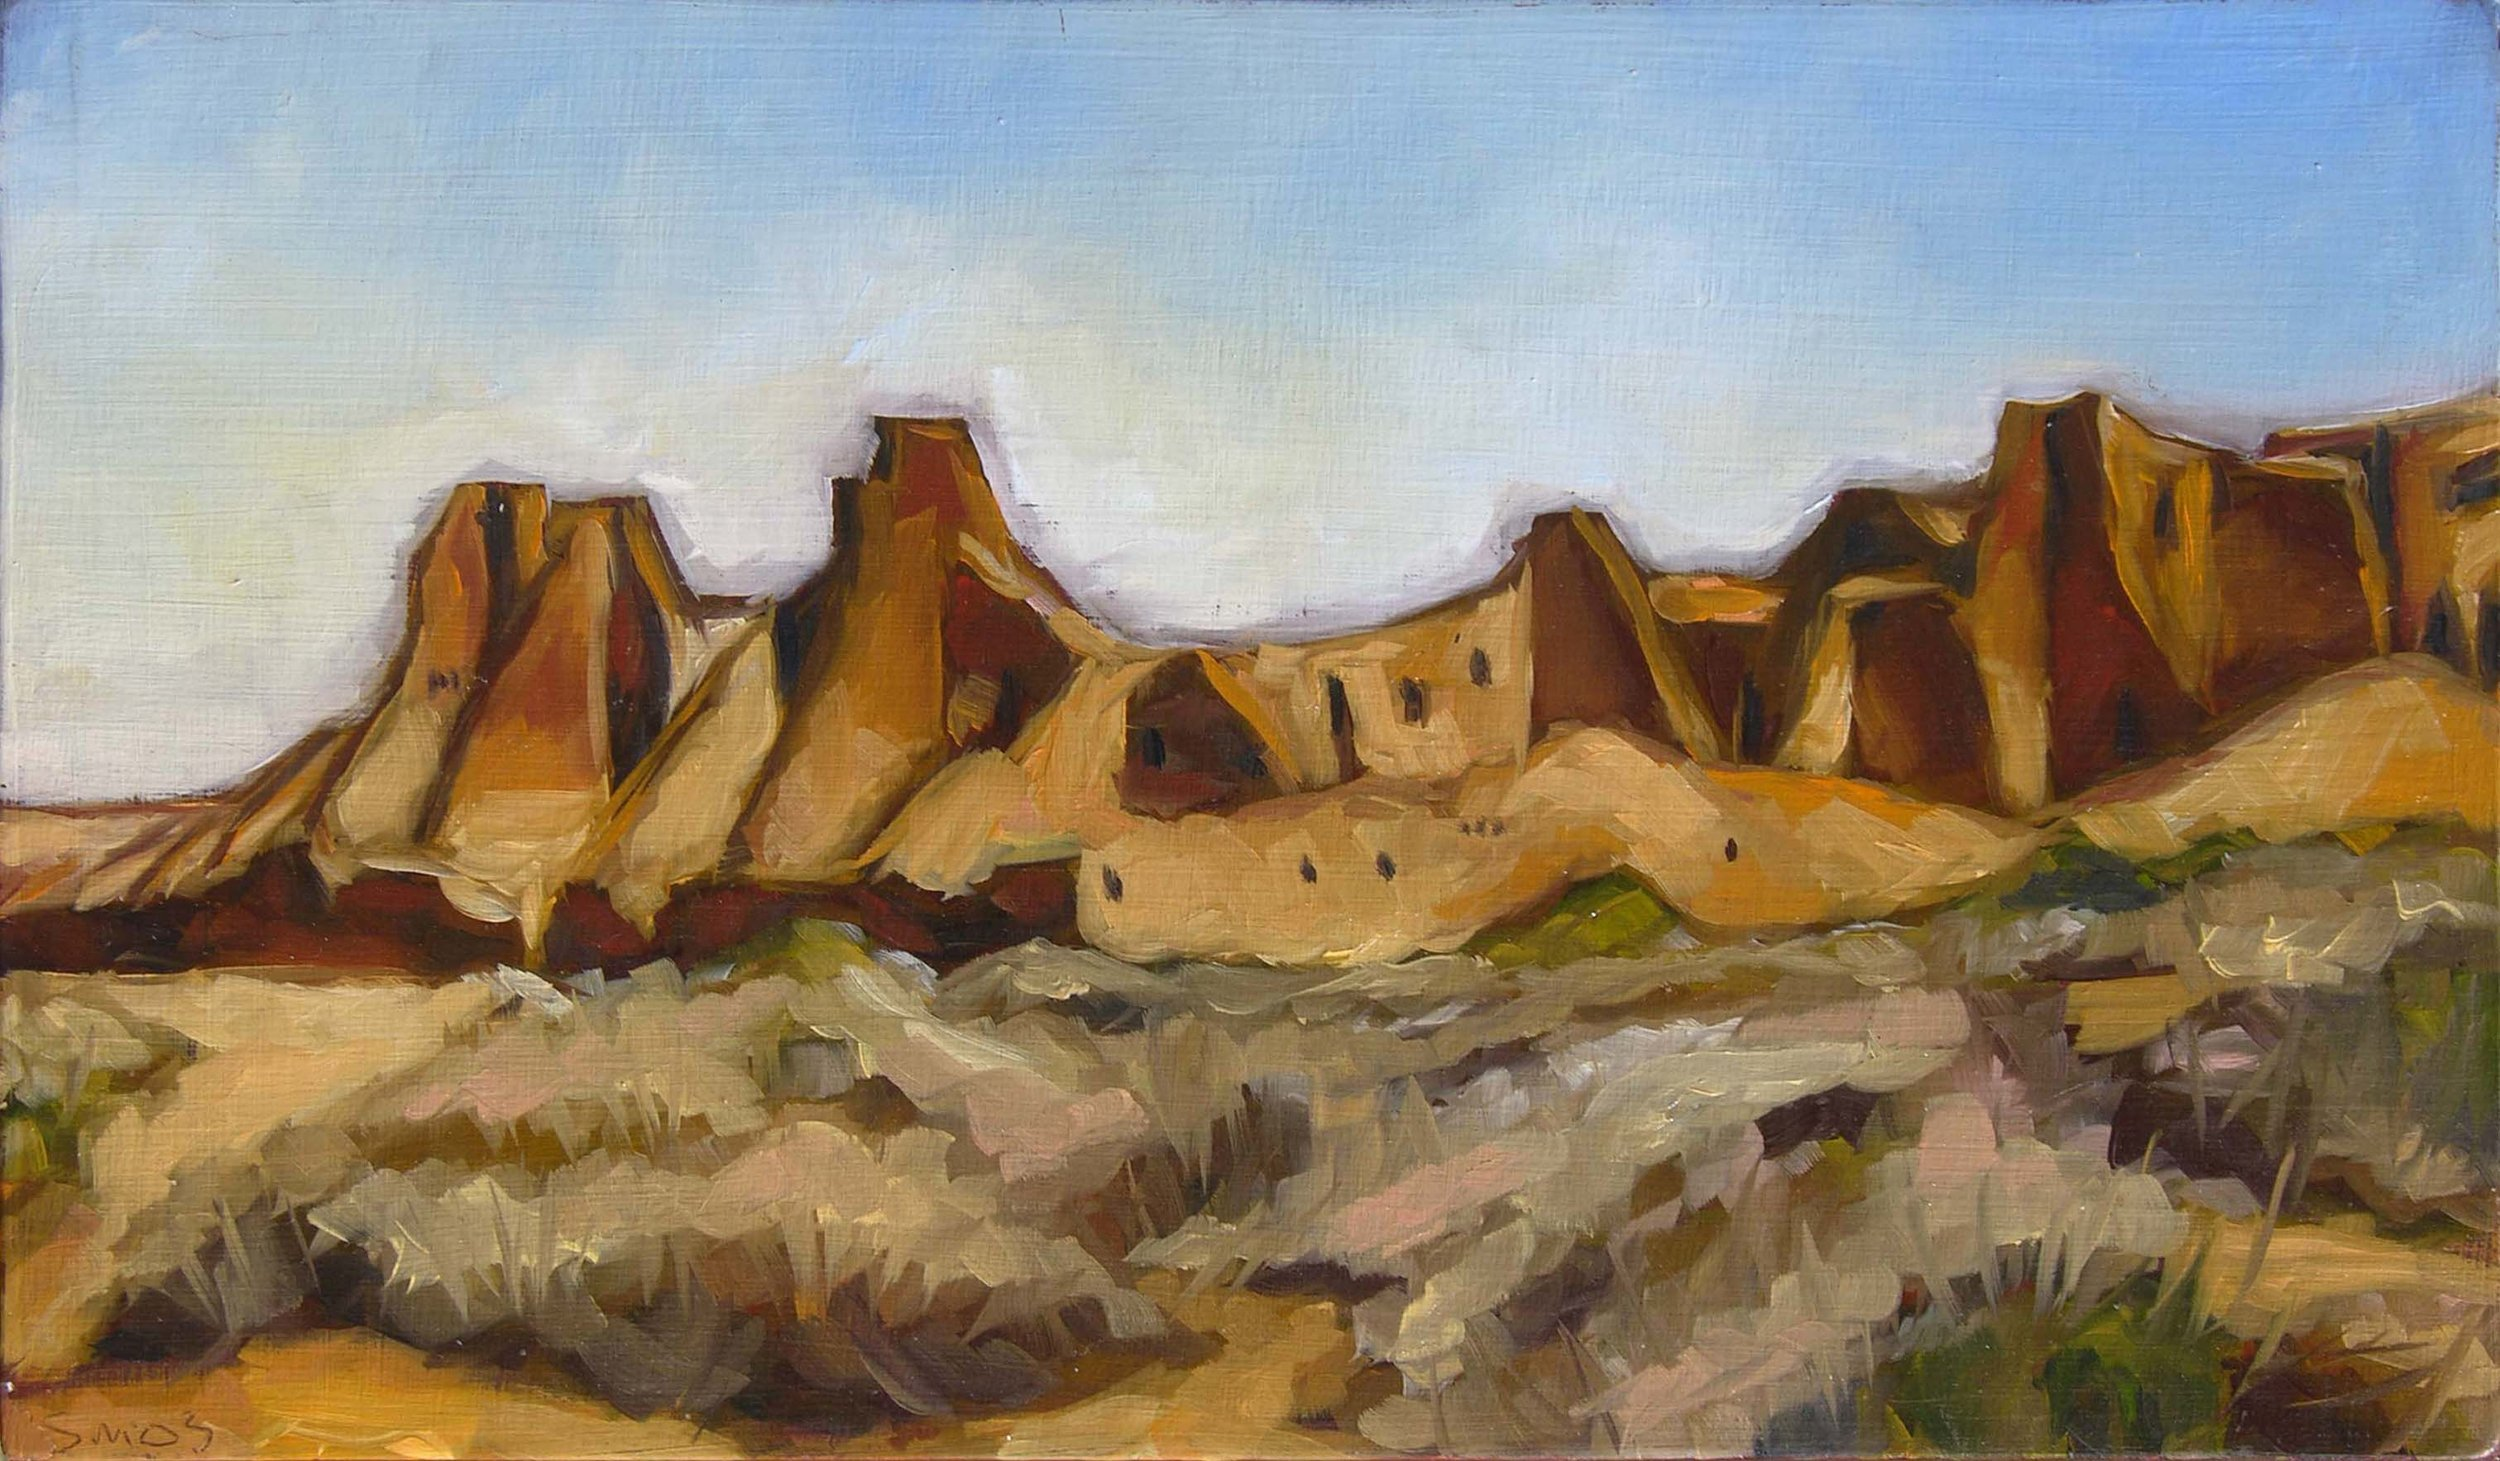 Southwest impressionist oil painting by Steve Martin